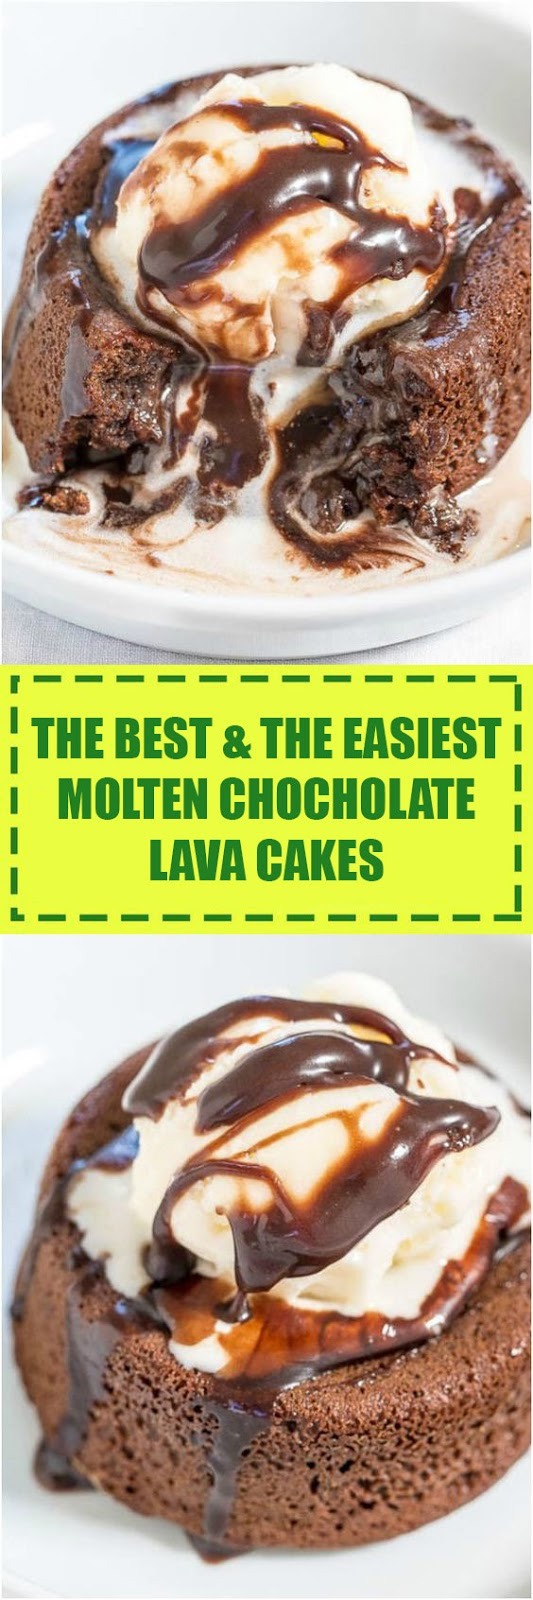 The Best & The Easiest Molten Chocolate Lava Cakes